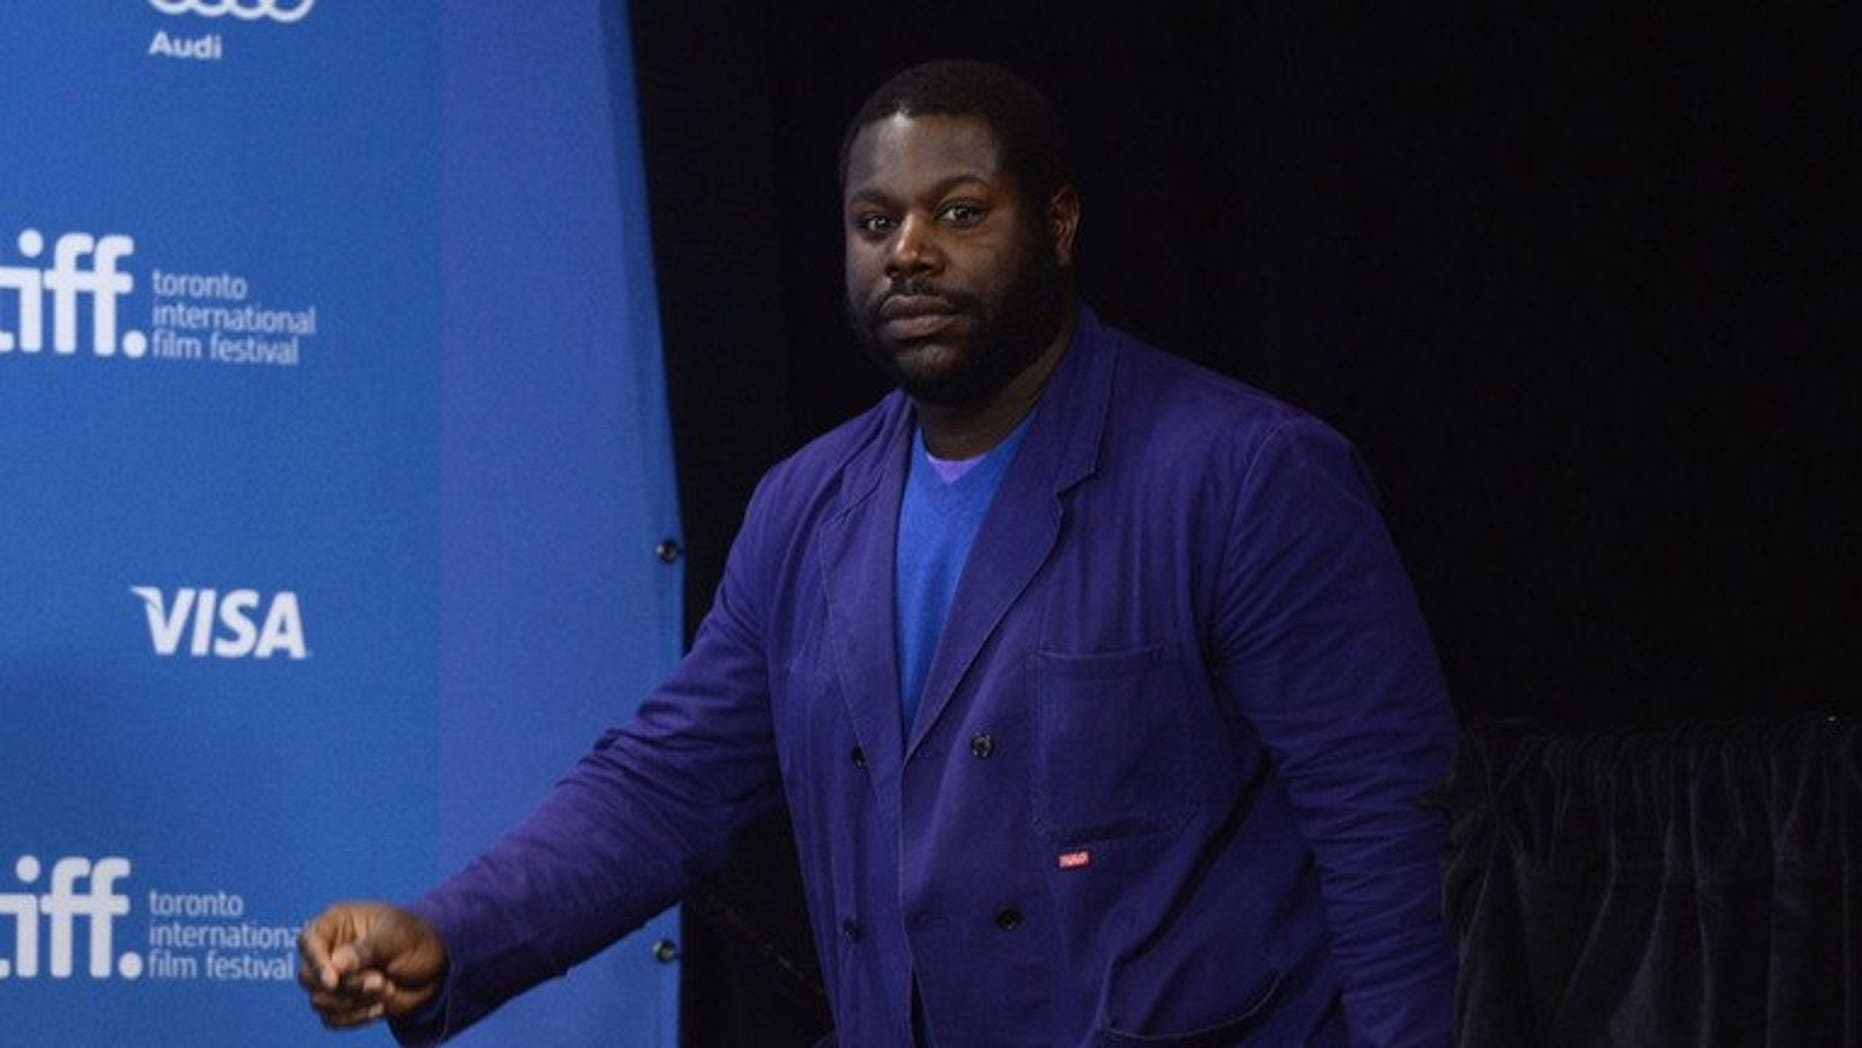 Director Steve McQueen attends a '12 Days A Slave' press conference during the 2013 Toronto International Film Festival on September 7, 2013.